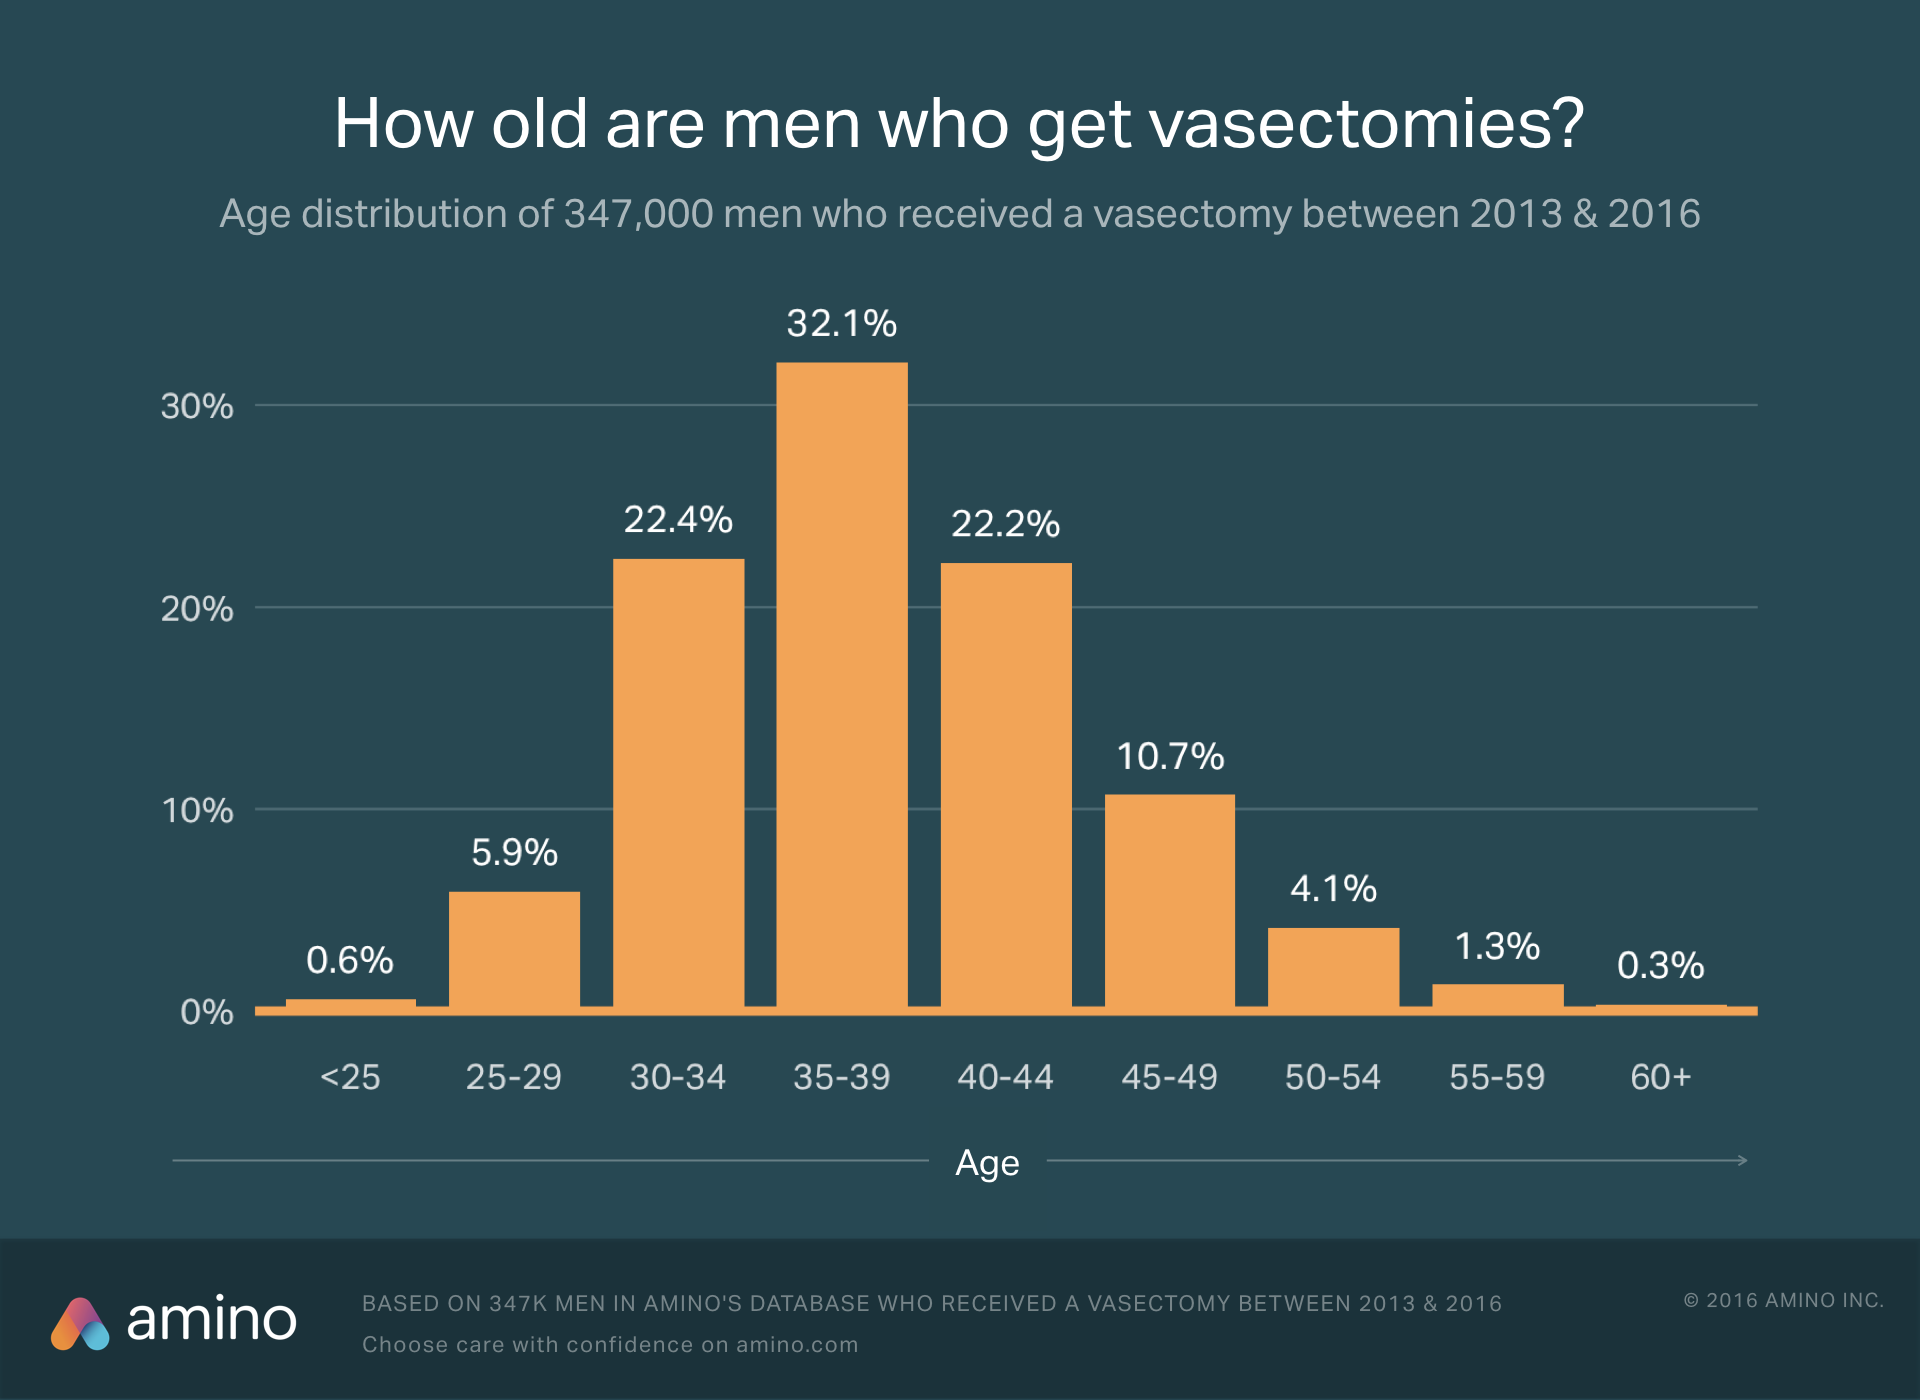 age of men getting vasectomies